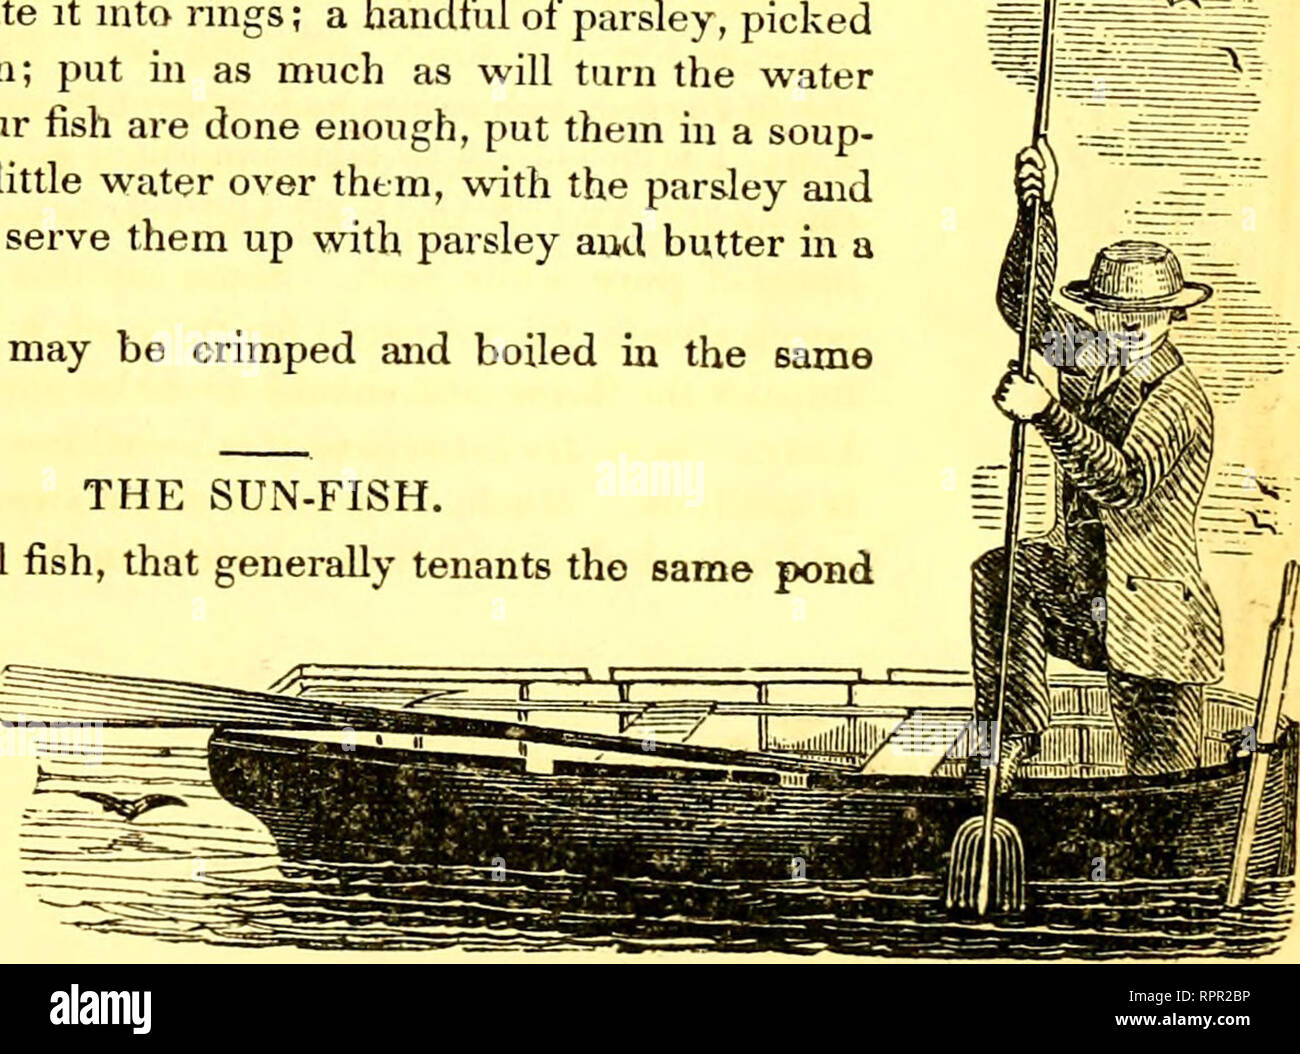 """. American angler's guide : or, complete fisher's manual, for the United States: containing the opinions and practices of experienced anglers of both hemispheres ; with the addition of a second part.. Fishing. THE SUN-FISH. 149 never be parted with except for some special reason, there- fore as a general thing, I scale my perch. But, in summer, the skin of the percli is apt to acquire a slight bitter taste, or a smack of the mud—therefore, in summer I skin my perch."""" """" Of the Gastronomic Properties of the Perch,"""" says Blaine, """" whoever has heard of the broiled perch flitche - Stock Image"""